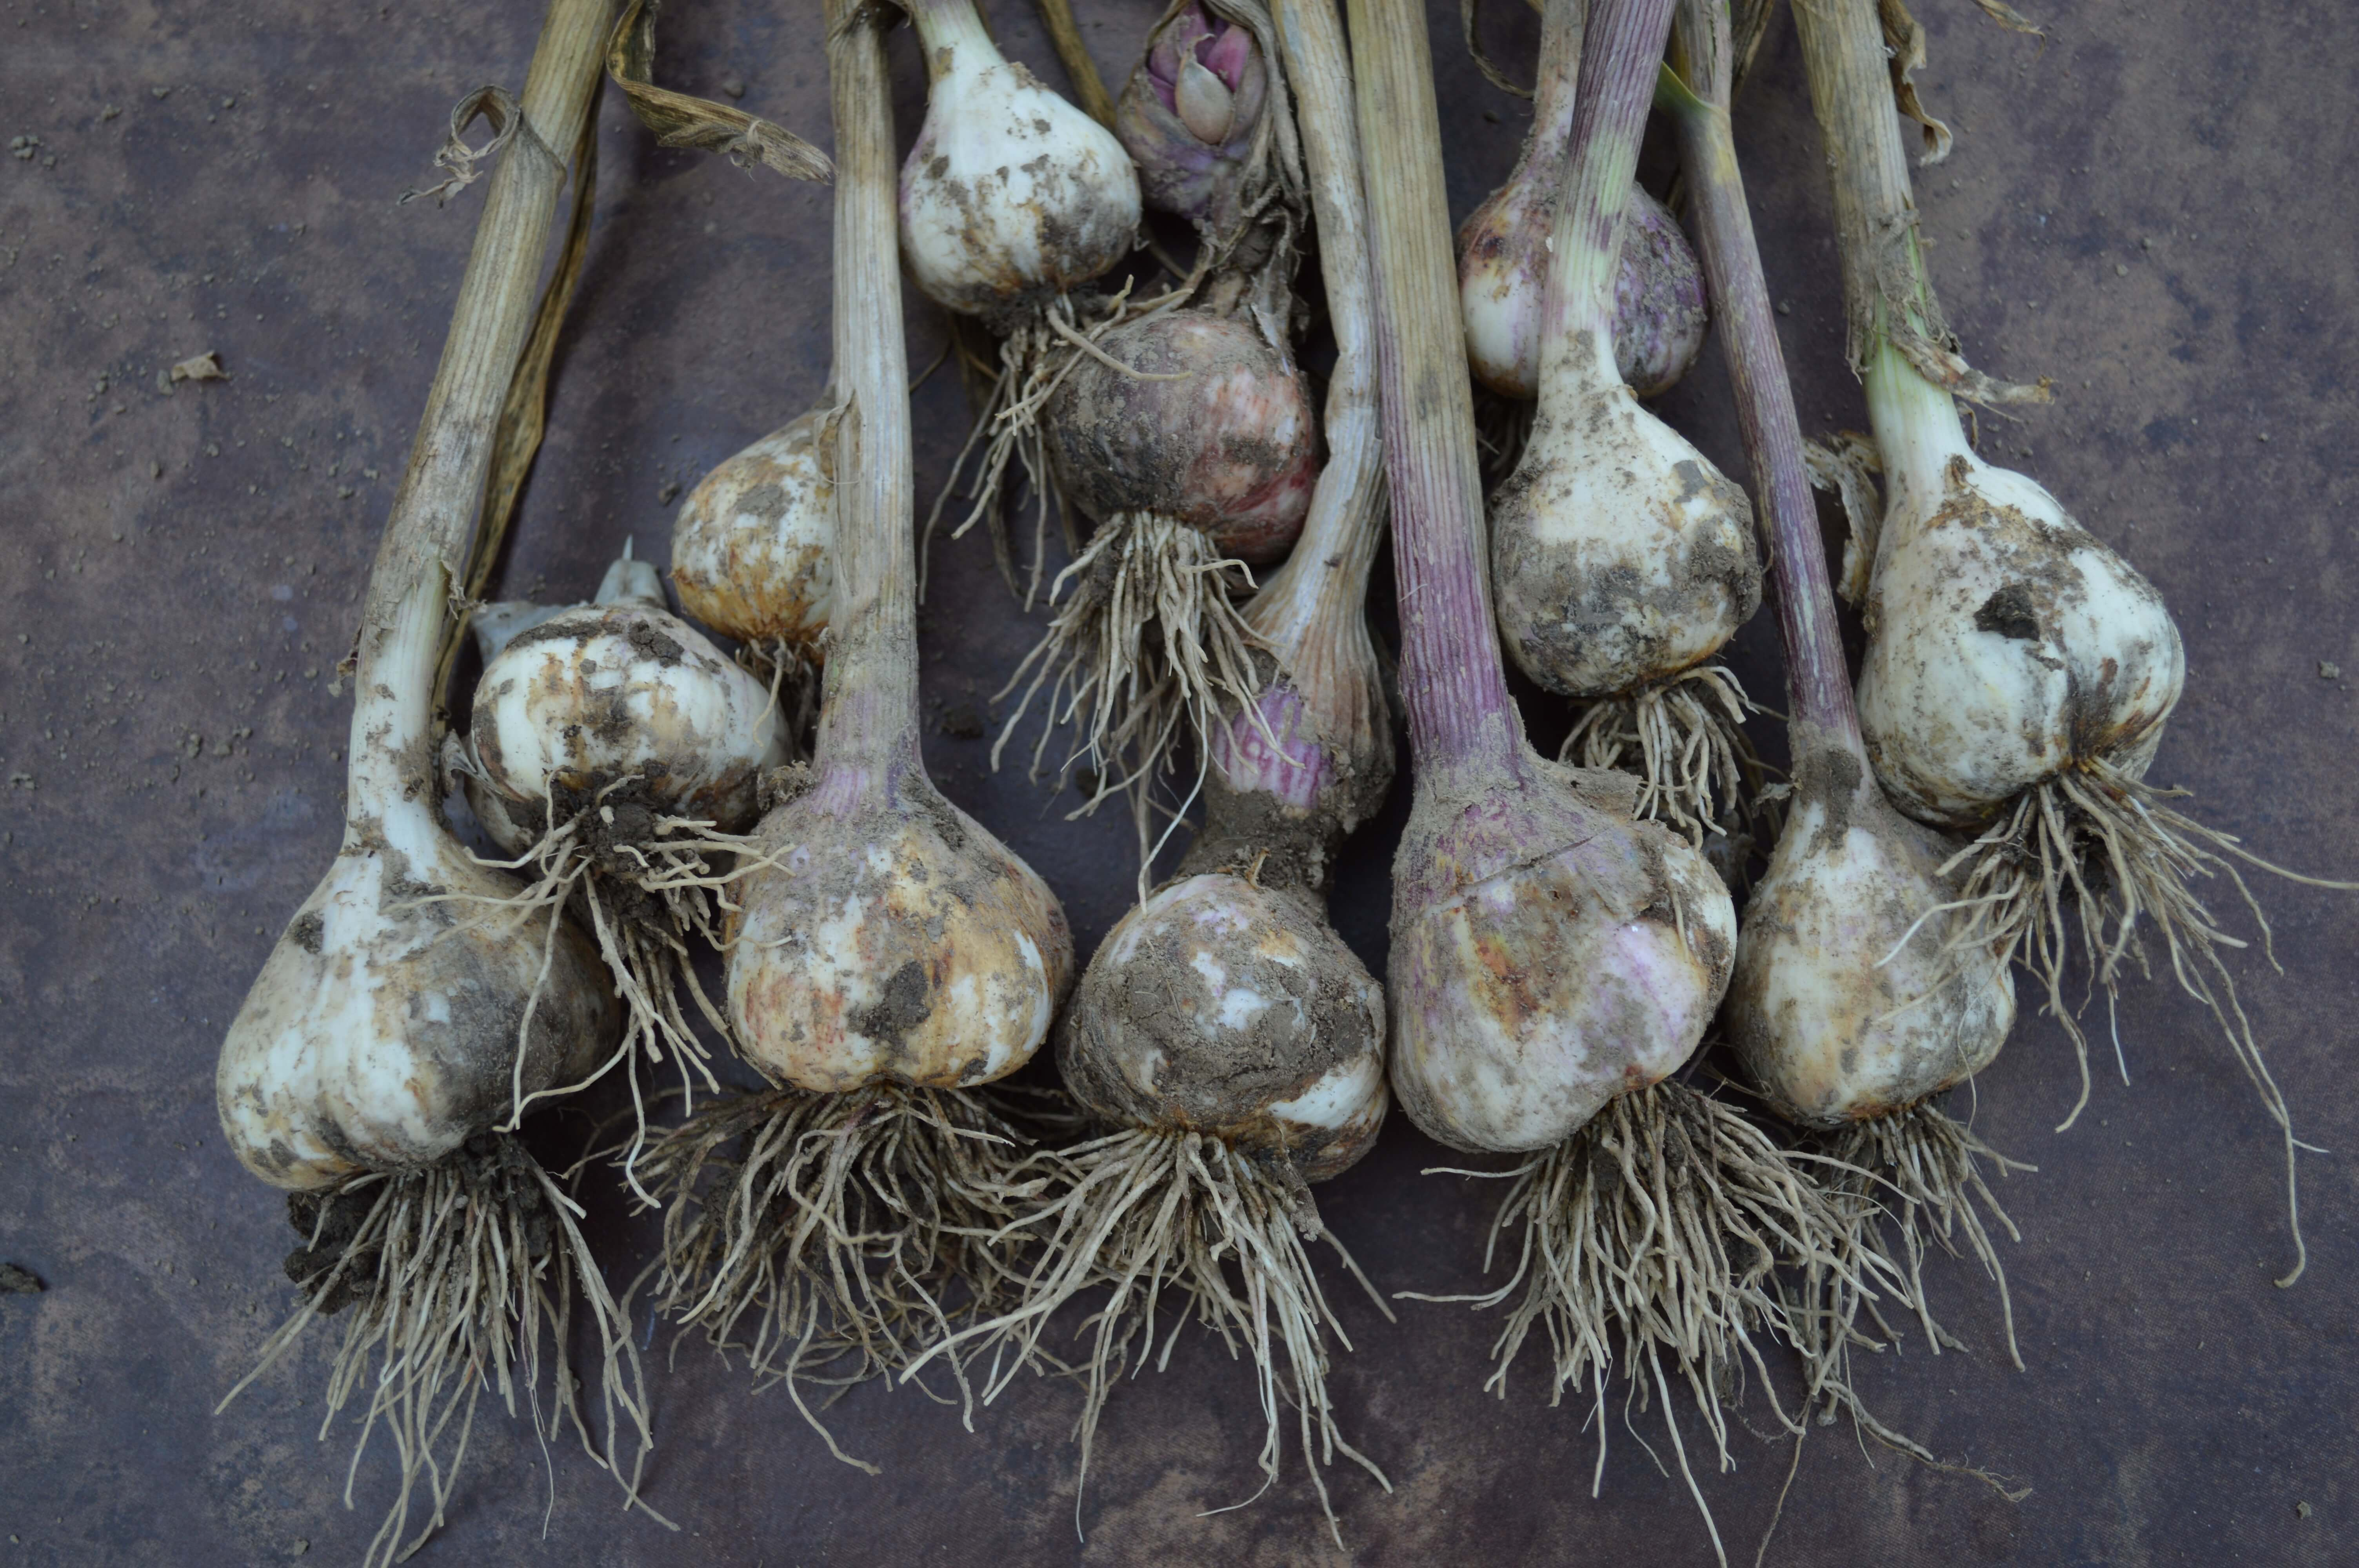 Take these lessons learned by Claire into consideration when planting garlic in your garden so it increases your chances of a bountiful harvest.